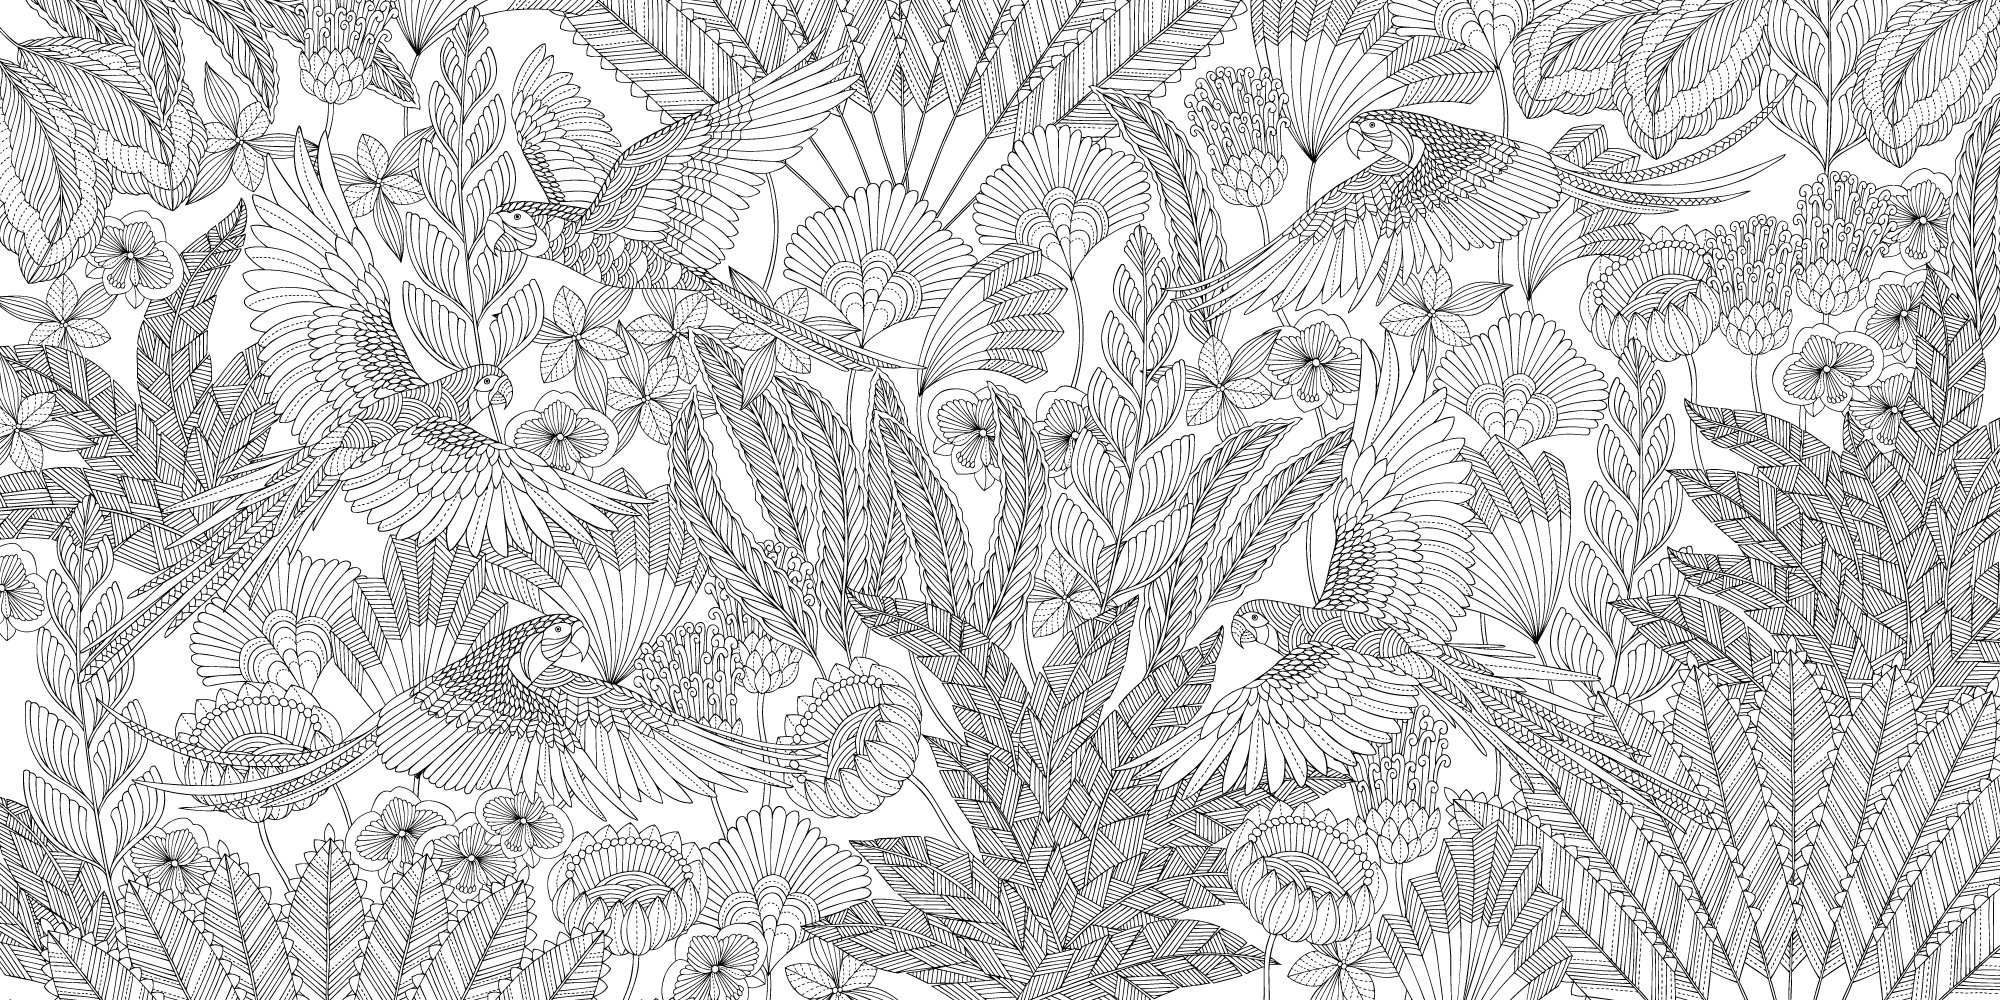 millie marotta u0027s tropical wonderland a colouring book adventure